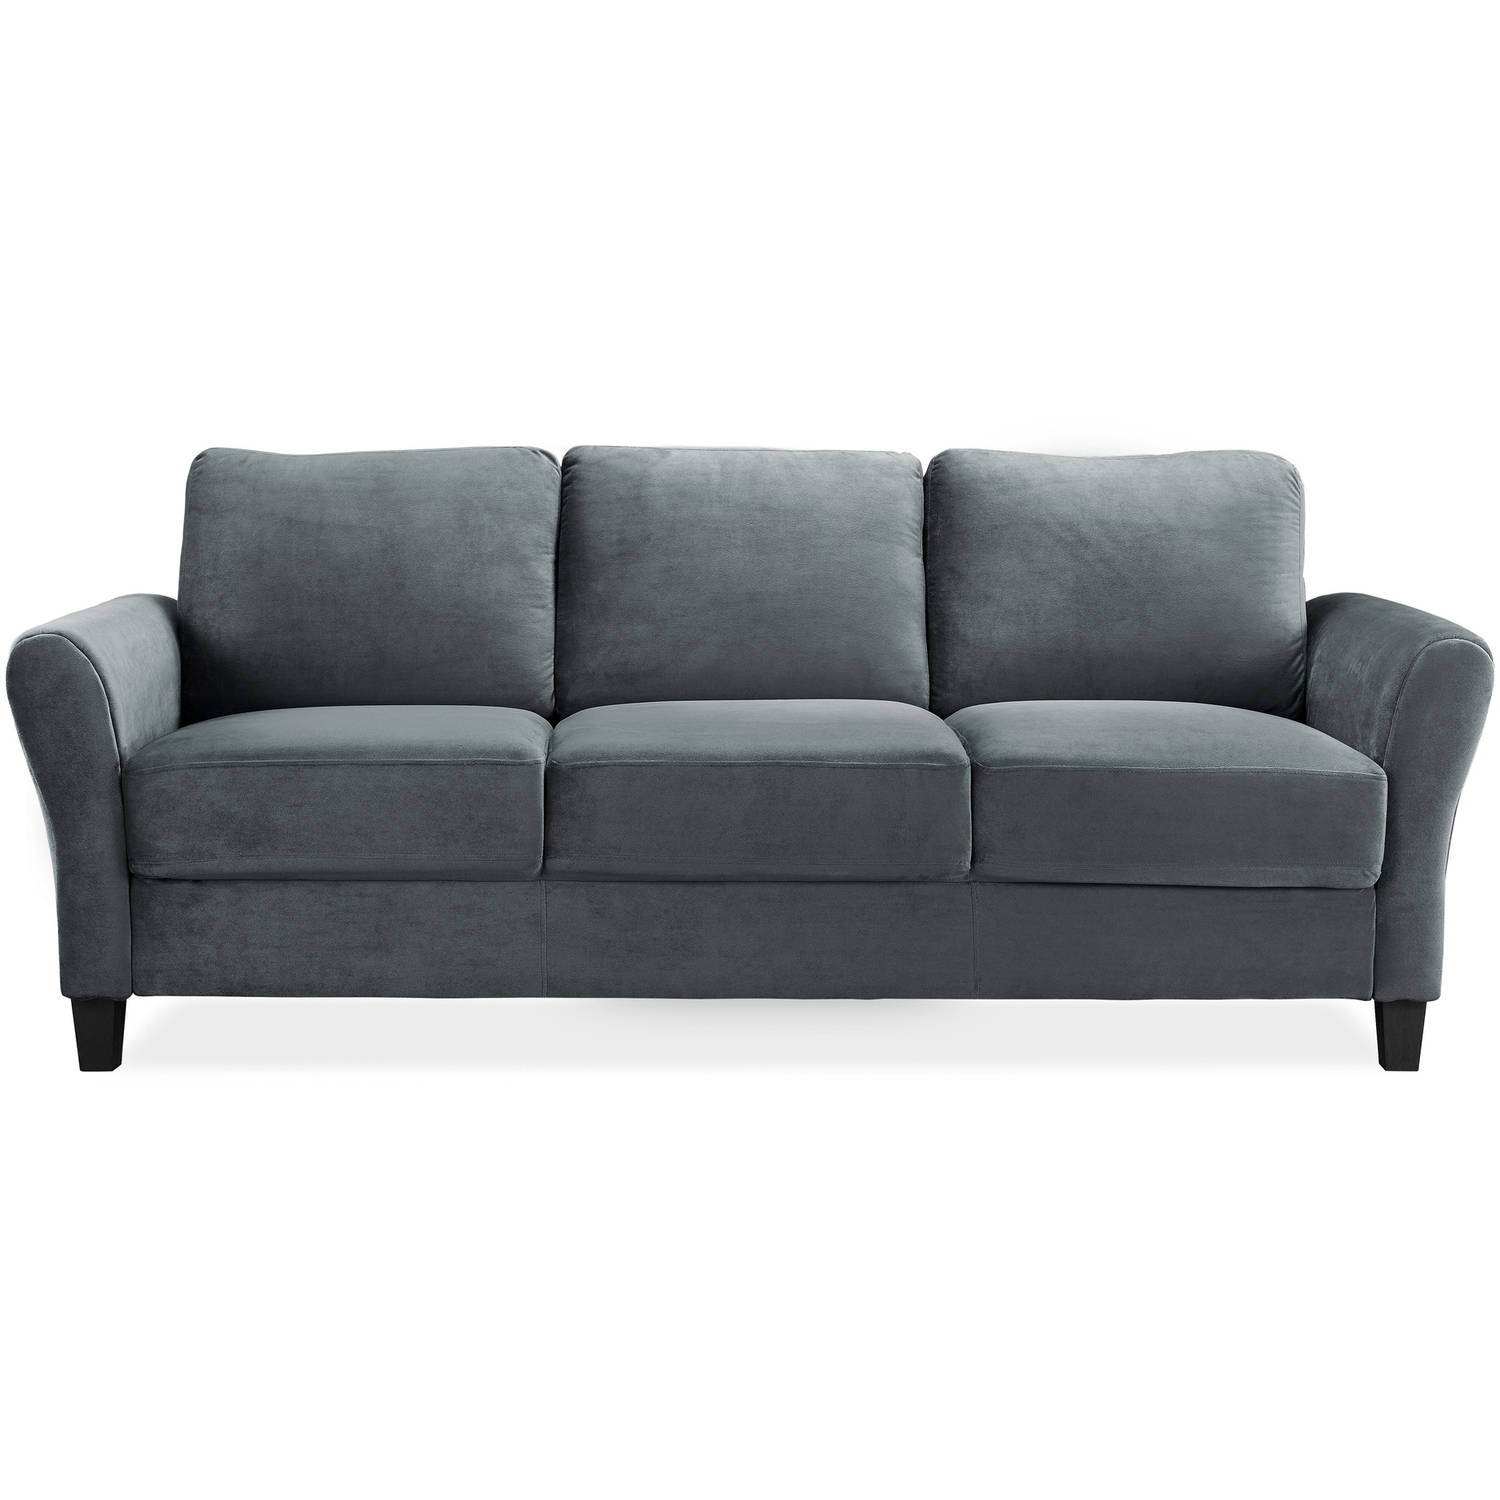 Alexa Rolled-Arm Sofa, Dark Grey by LifeStyle Solutions